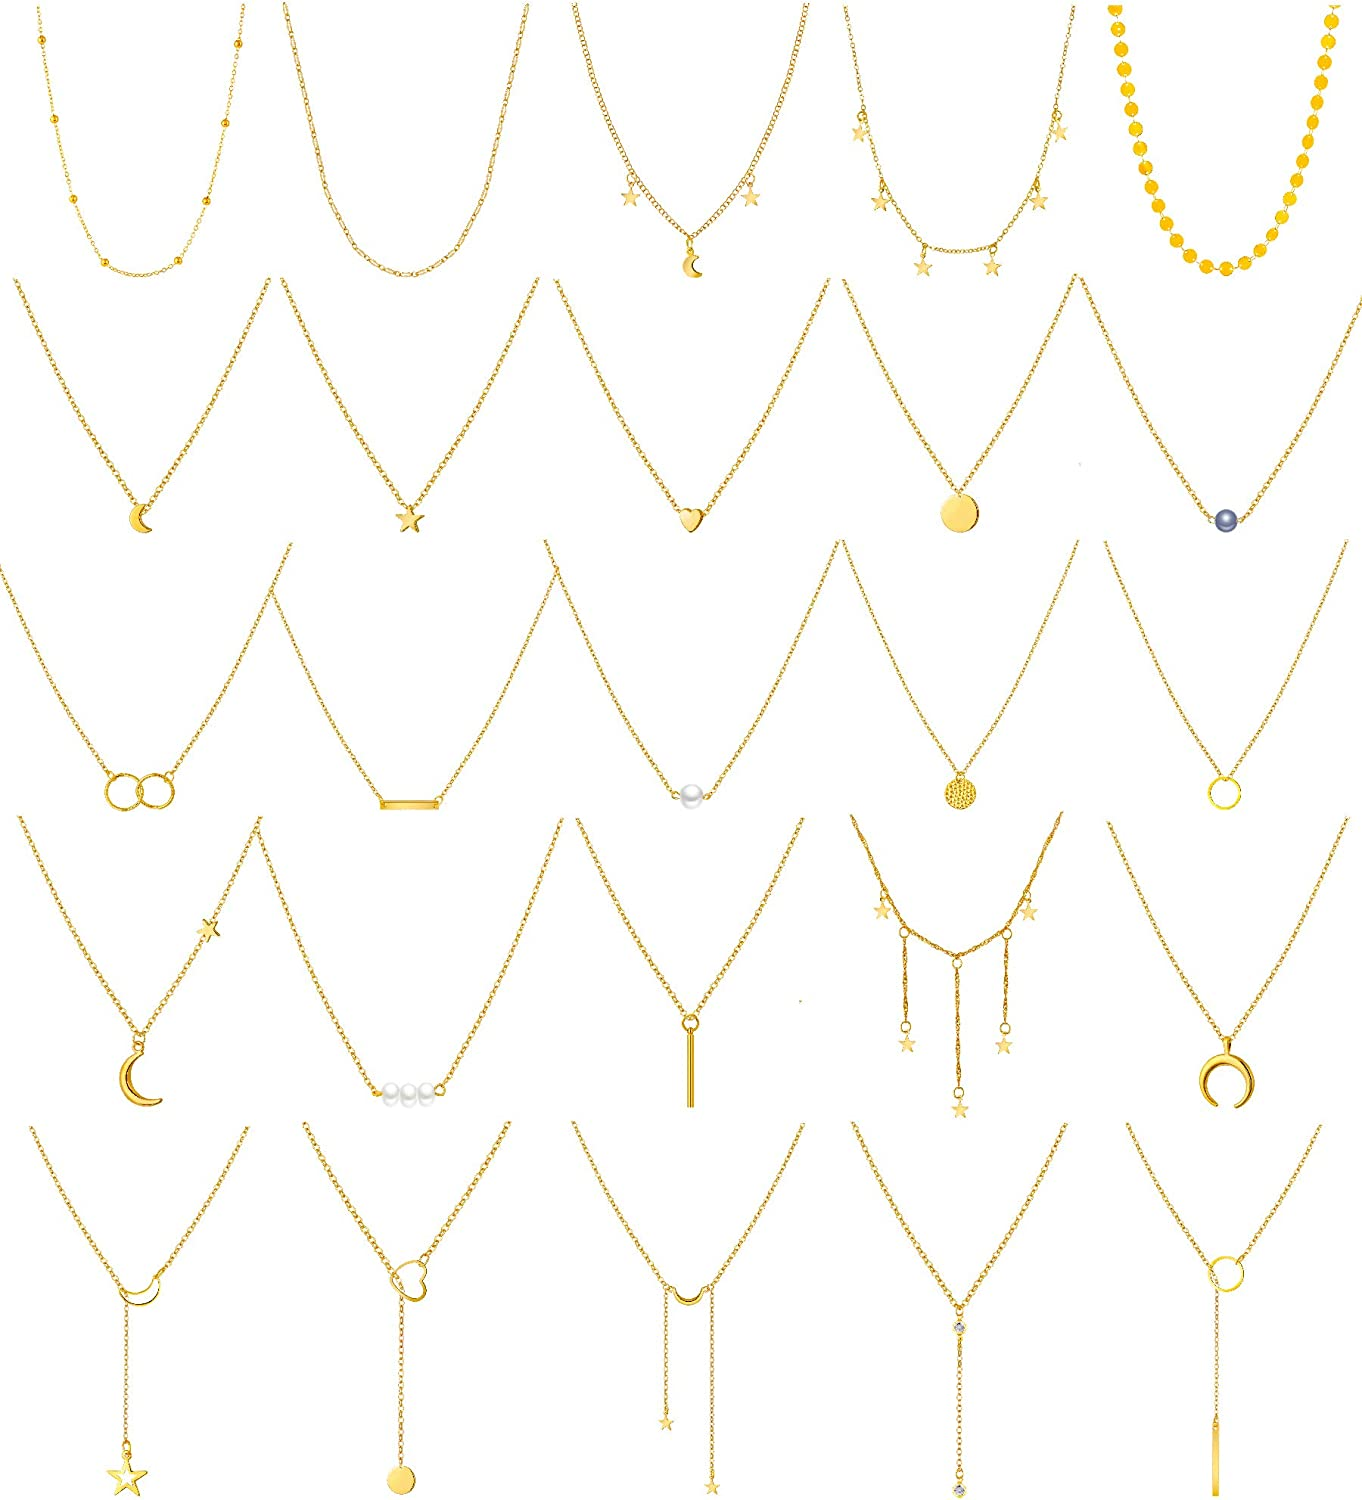 Honsny 25 Pieces Layered Choker Necklaces for Women Girls Gold Multilayer Necklace Set Adjustable Dainty Moon Star Coin Bar Pearl Pendant Y Necklaces Jewelry for Teens Girls Women